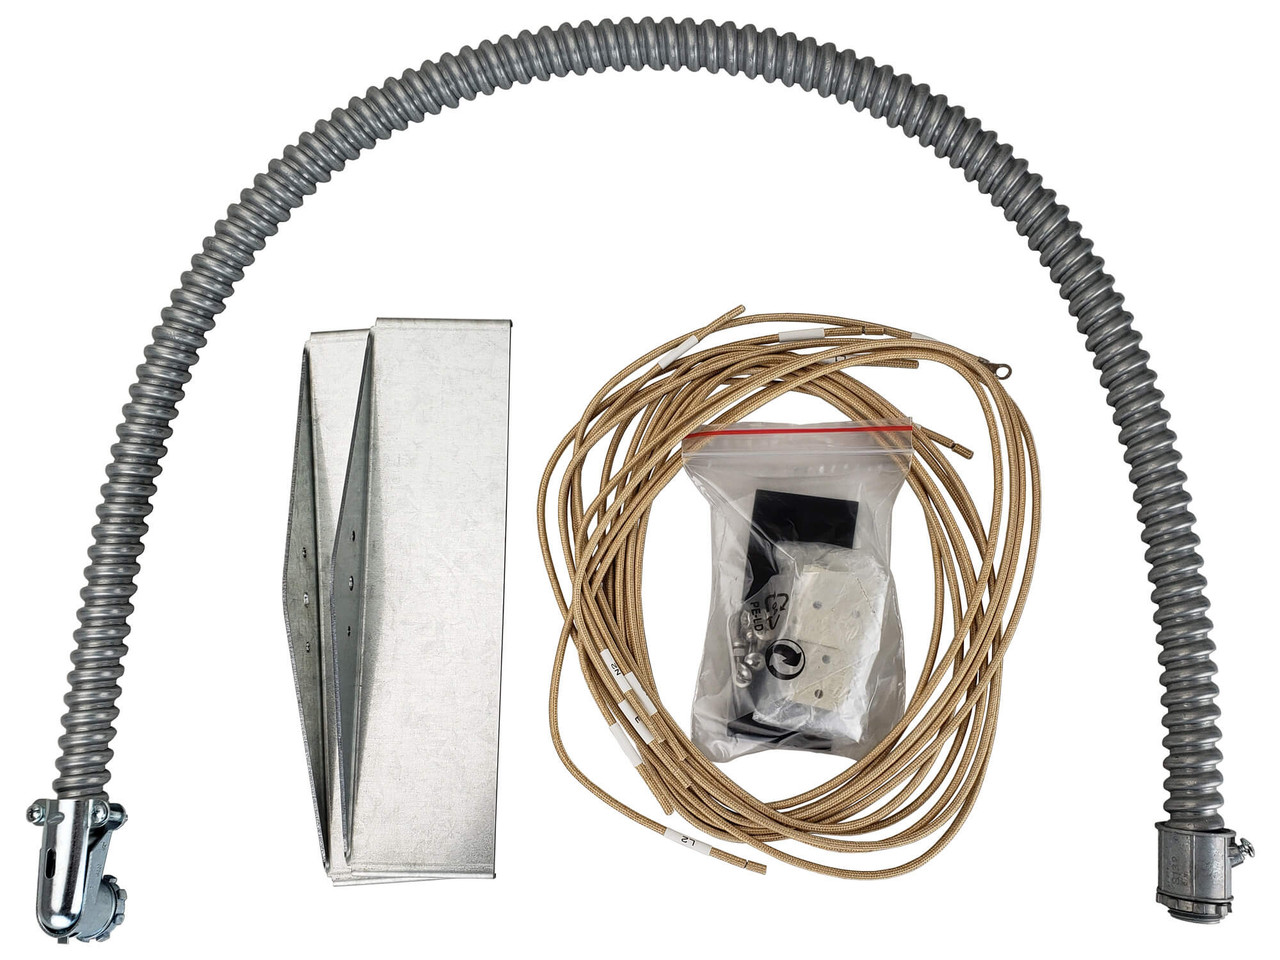 Bromic Ceiling Recess Kit Replacement Parts Pack